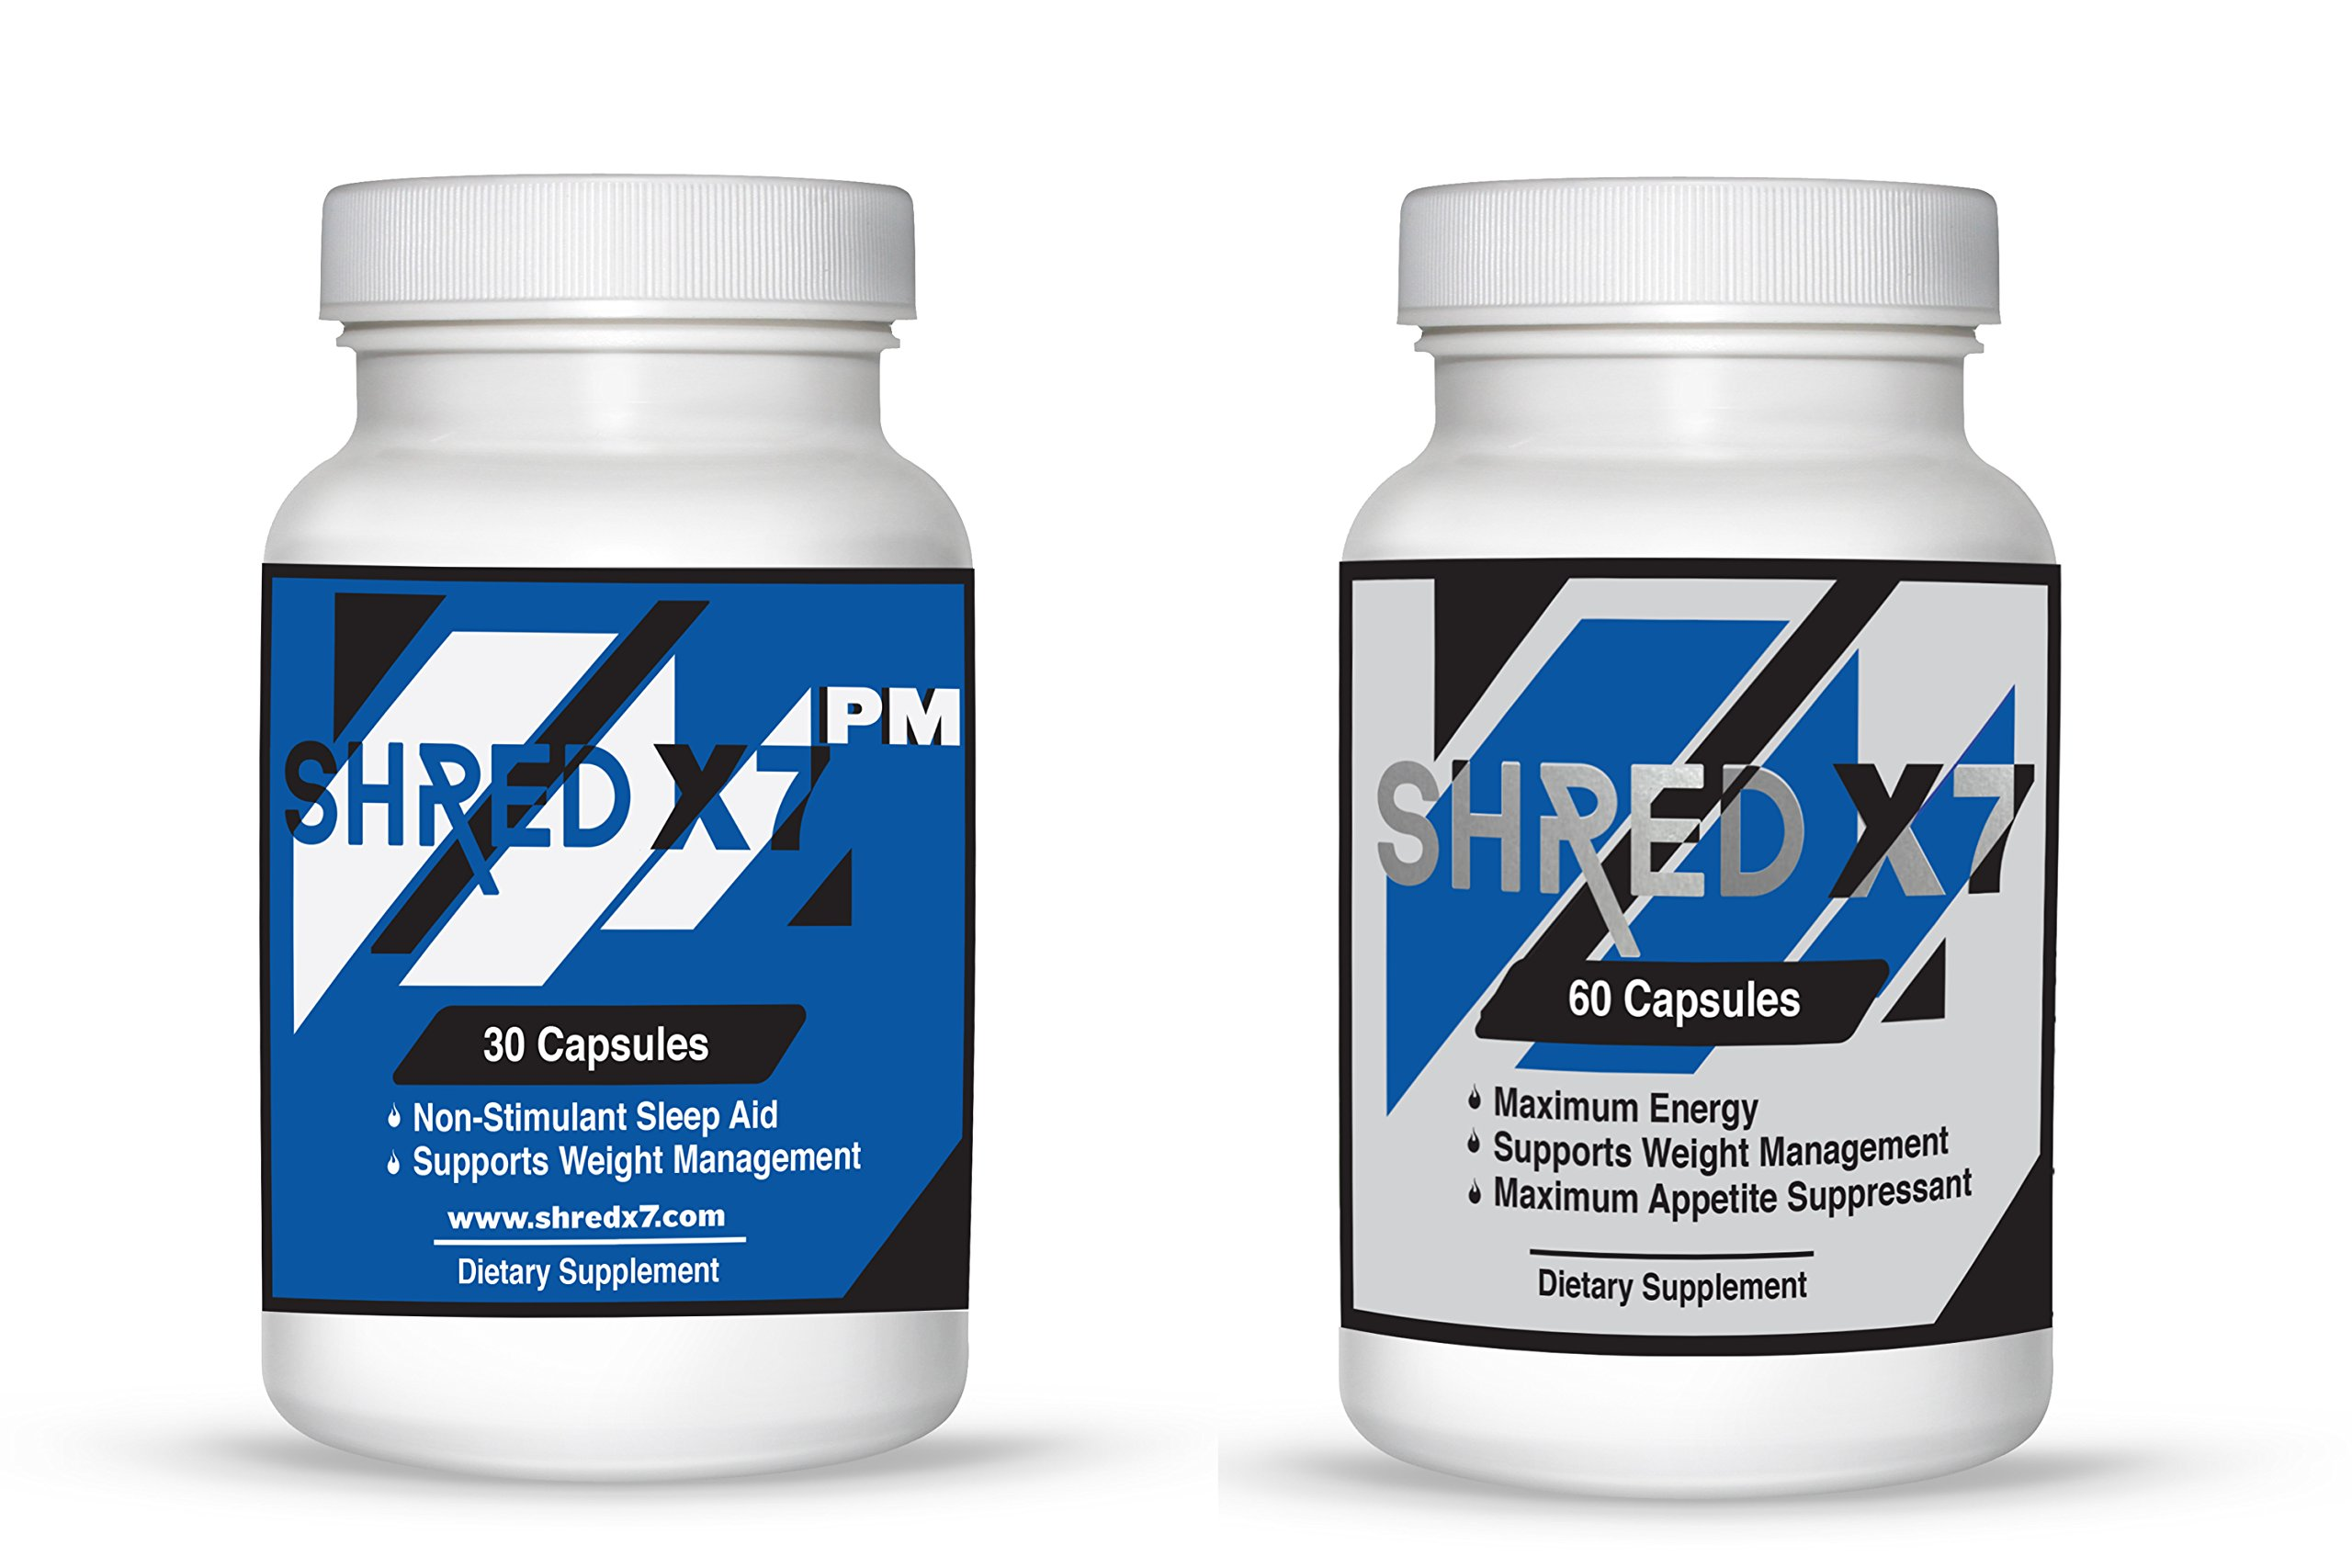 Shred X7- COMBO ORIGNAL AND PM- Diet pills for weight management and appetite suppression. One Bottle Each 60 Caps Original and 30 Caps PM